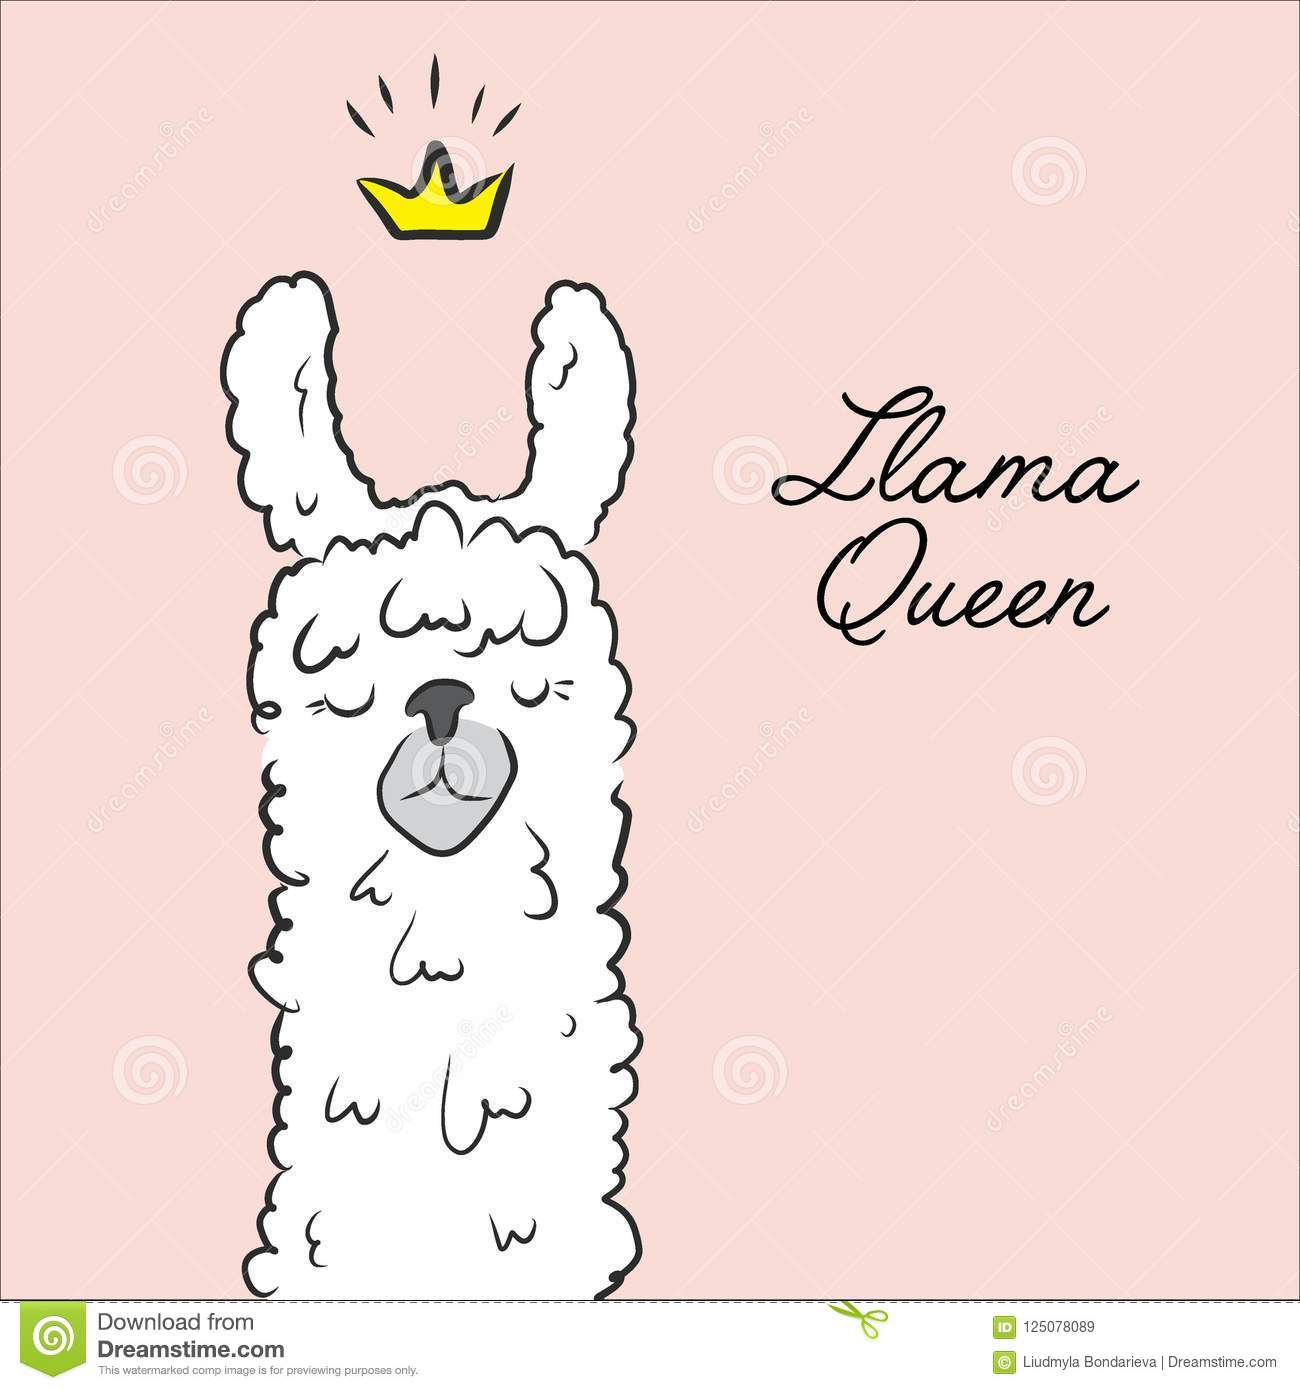 Llama Queen Drawing Animal Cute Cartoon Alpaca With Crown Illustration Cartoon Kids Character Cool Slogan Text Stock Vector Illustration Of Element Clothe 125078089 Princess crown background vector illustration. https www dreamstime com llama queen drawing animal cute cartoon alpaca crown illustration kids character cool slogan text image125078089